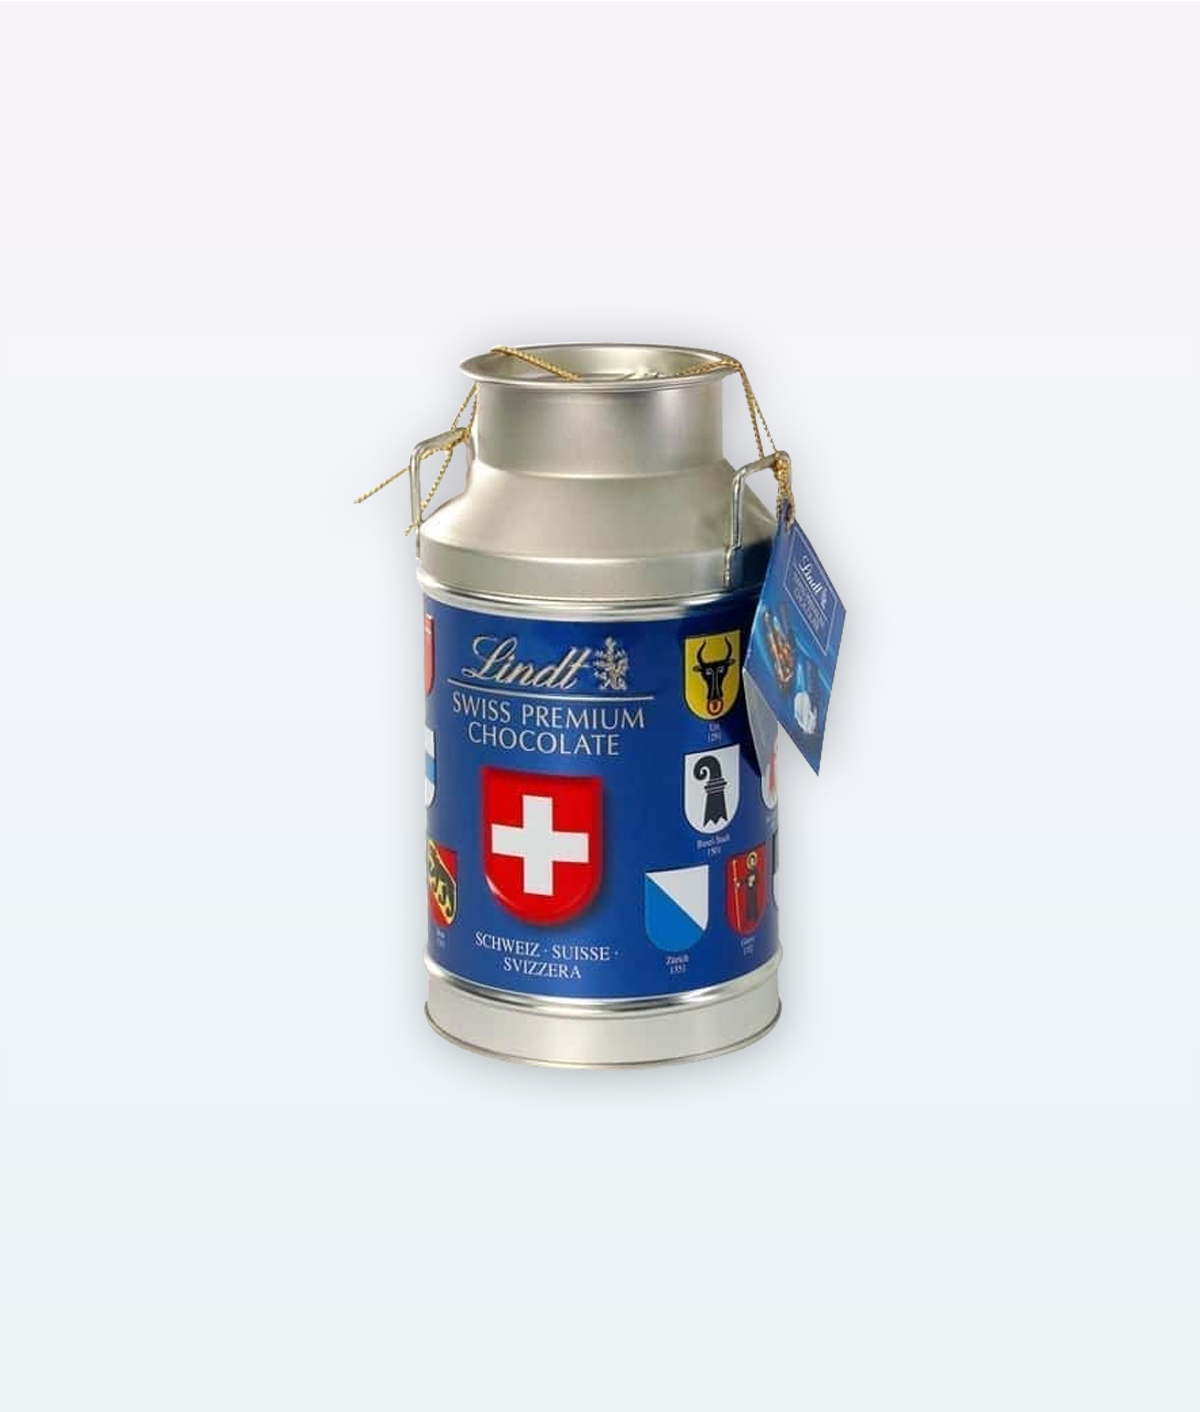 Lindt-Chocolate-Milk-Can-with-Cantonal-Shield